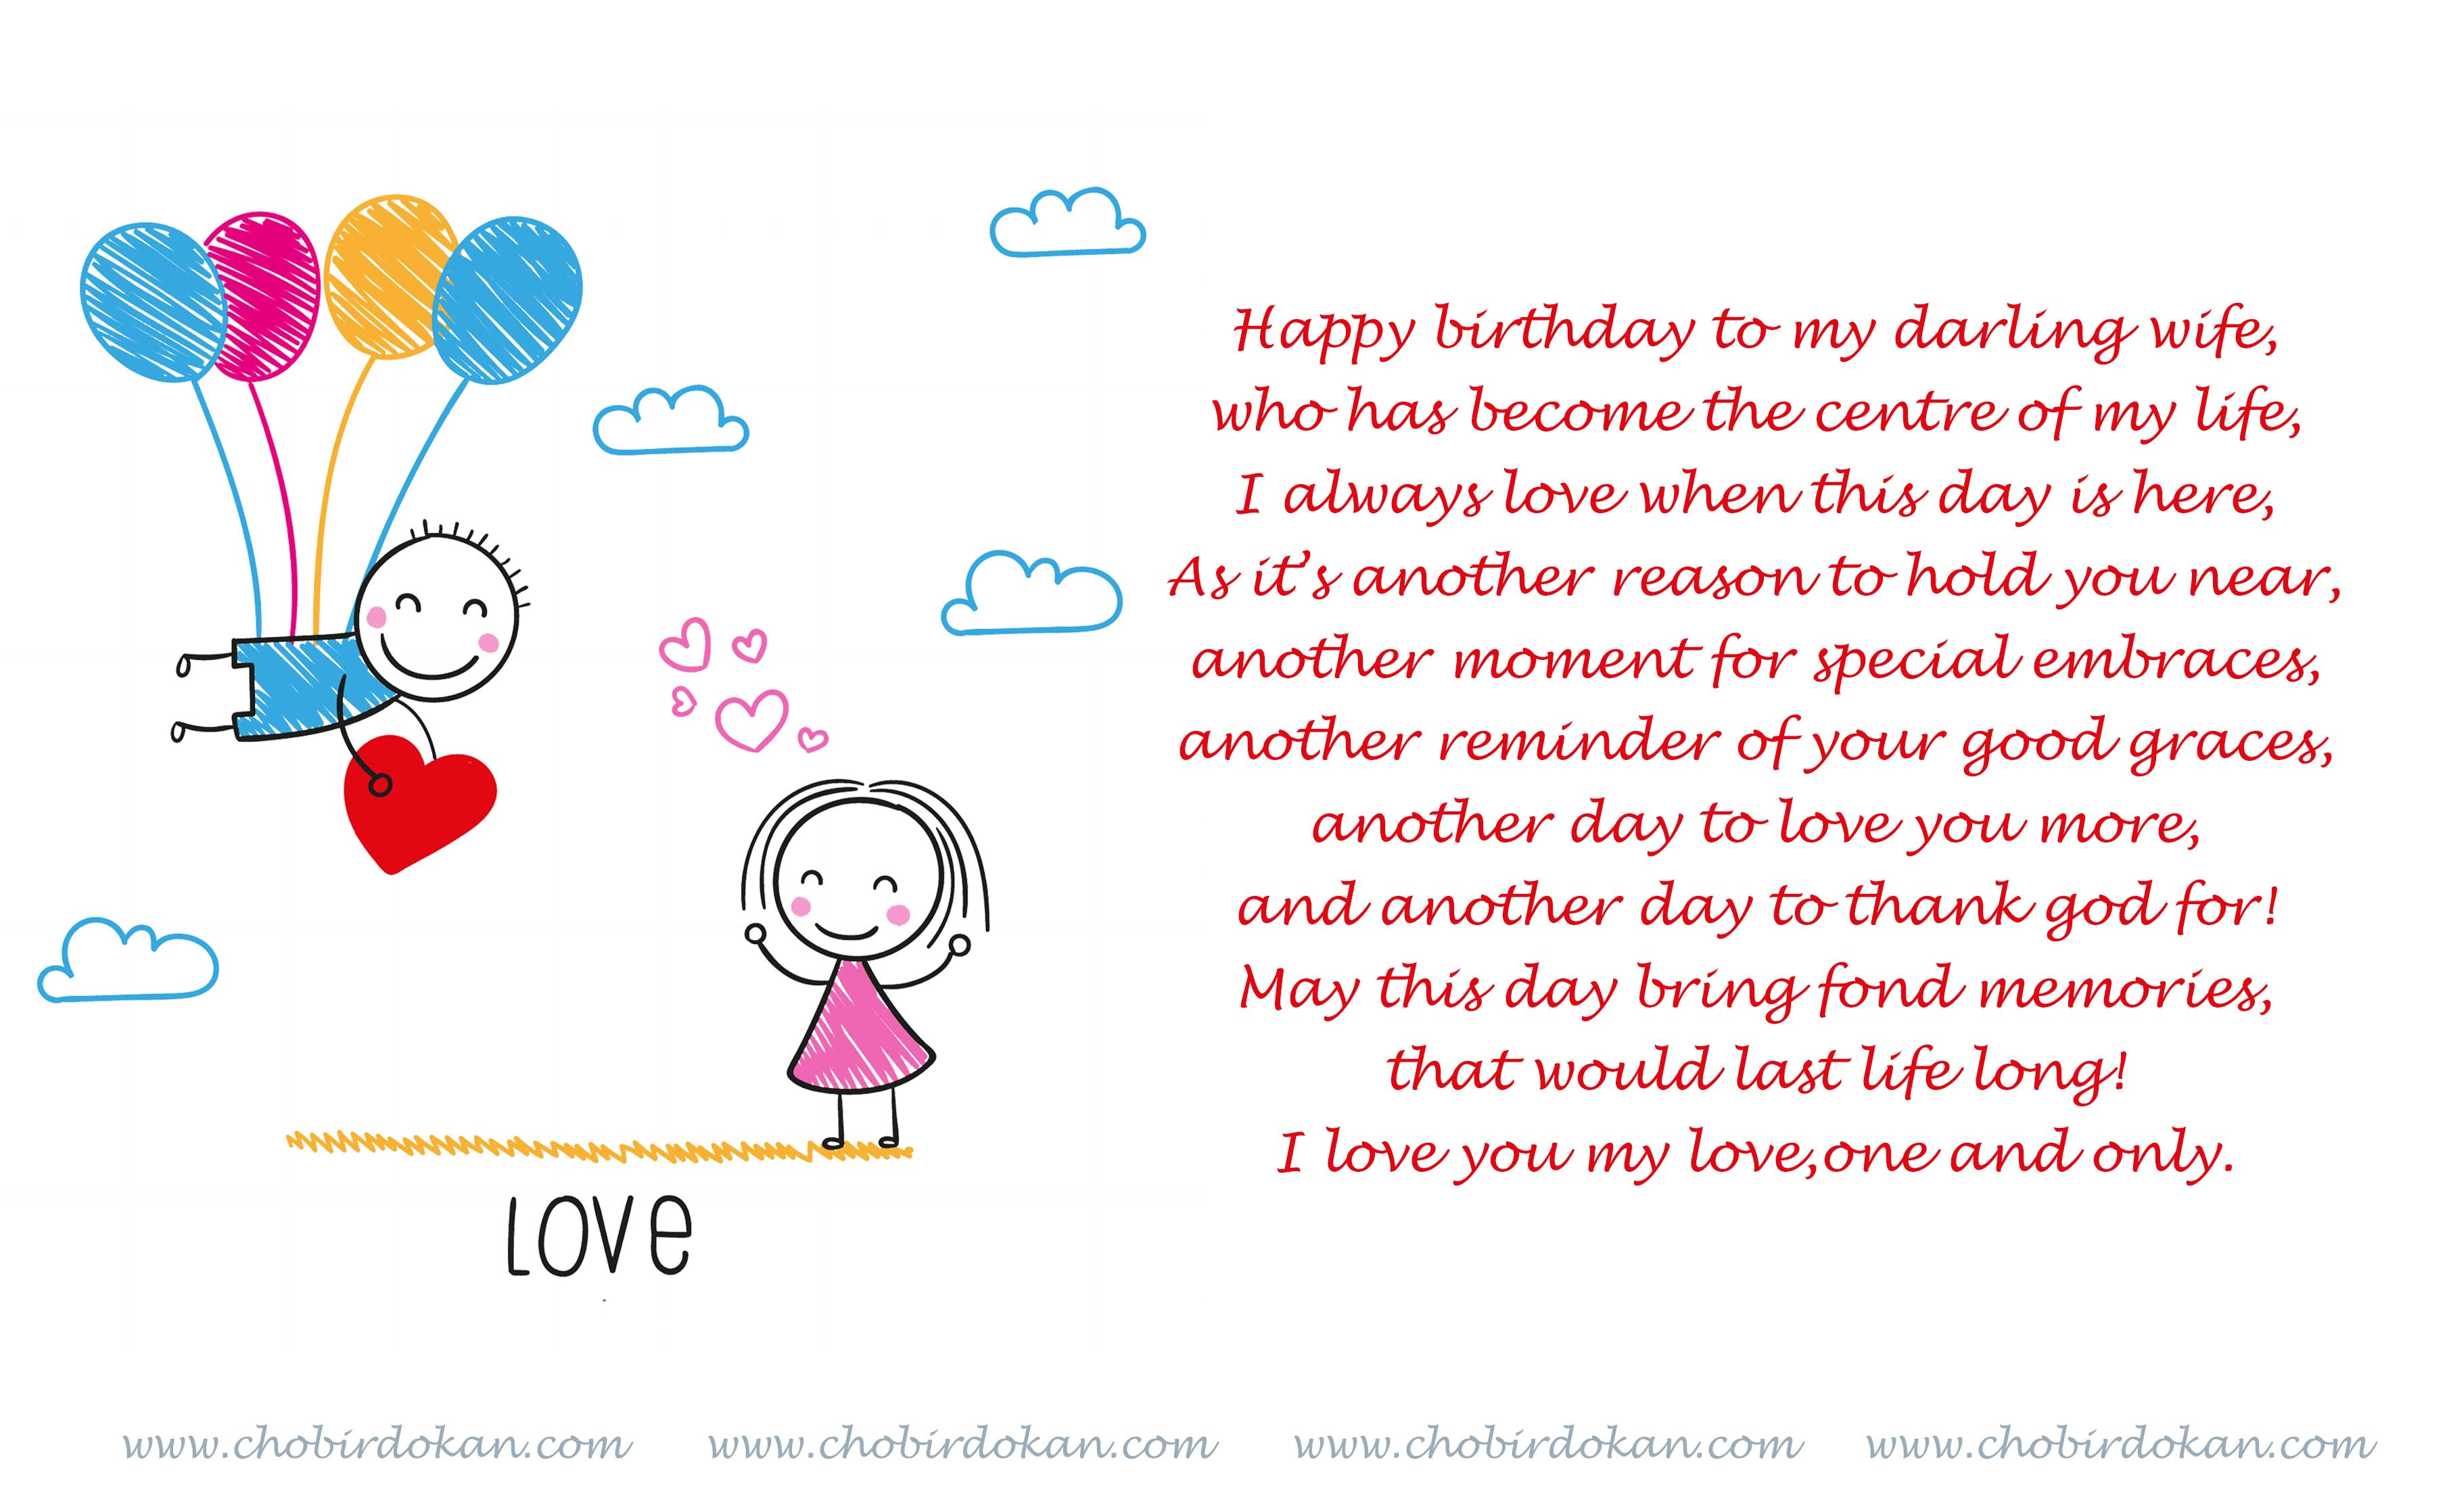 Romantic Happy Birthday Poems For Her -For Girlfriend or Wife|Poems